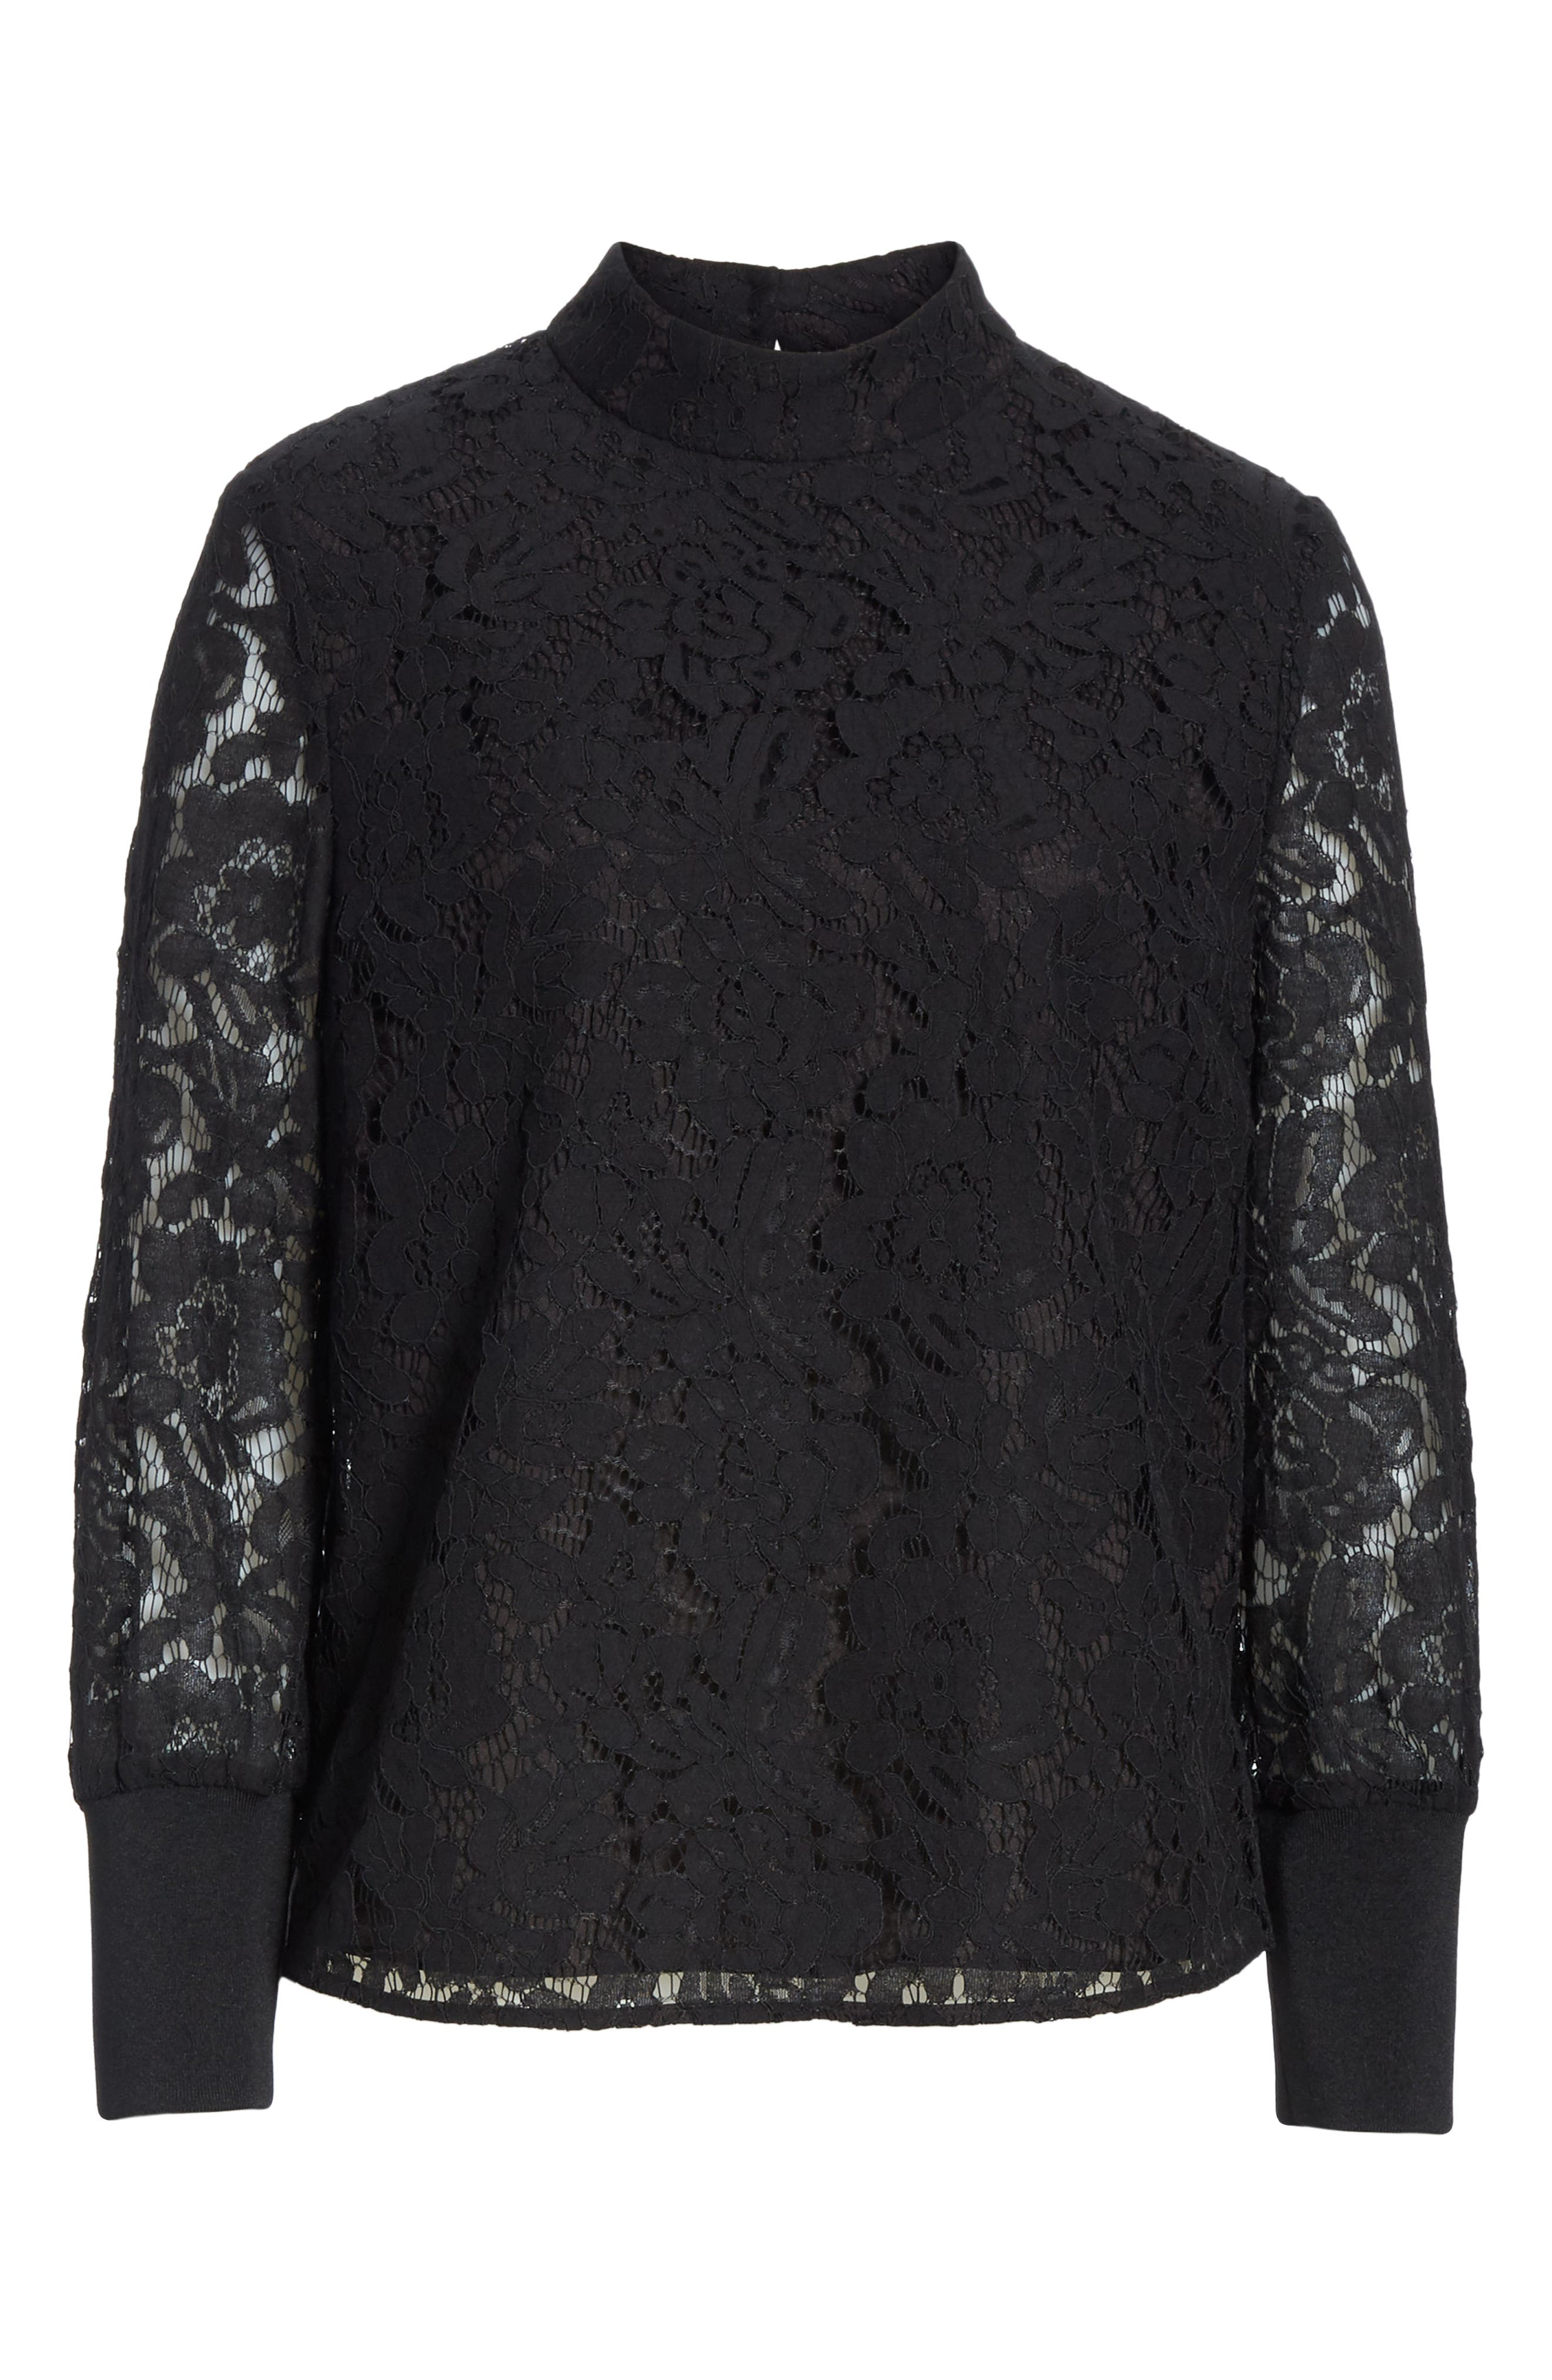 Dilly Lace High Neck Blouse,                             Alternate thumbnail 6, color,                             BLACK